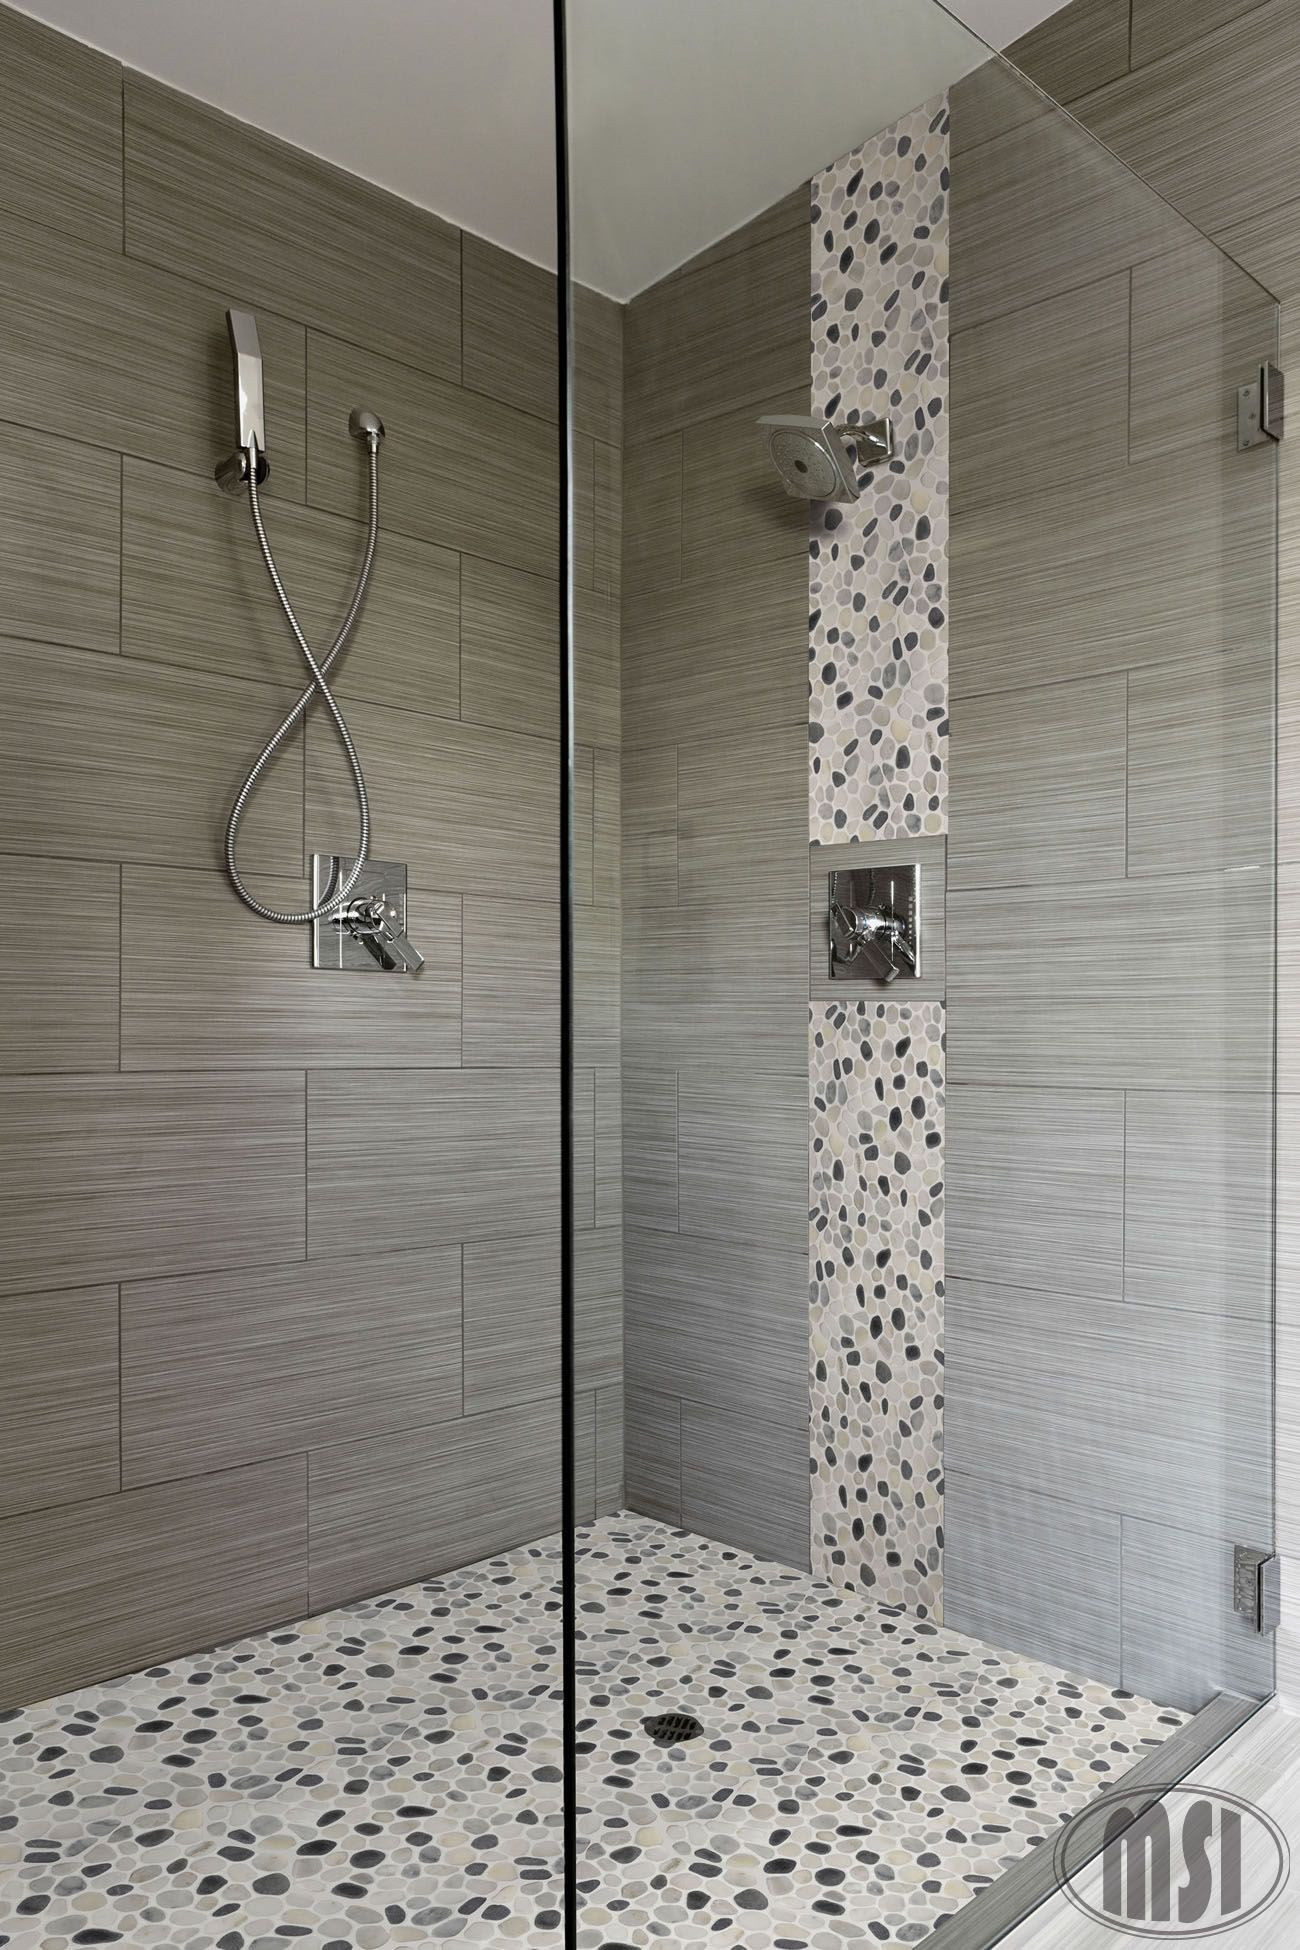 Cool Shower Tile love the pebble glass waterfall vertical design and the matching